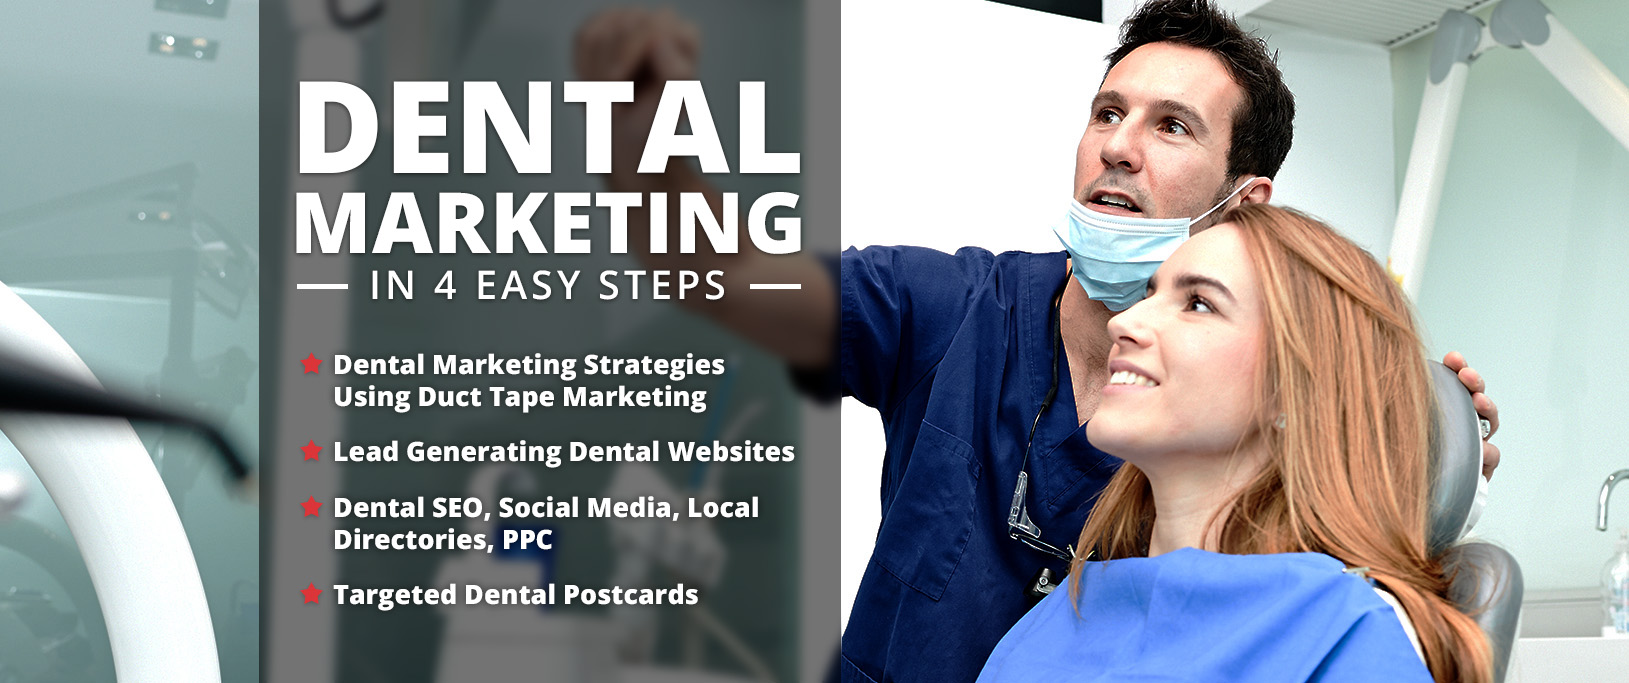 Dental Marketing, Websites, SEO, and PPC